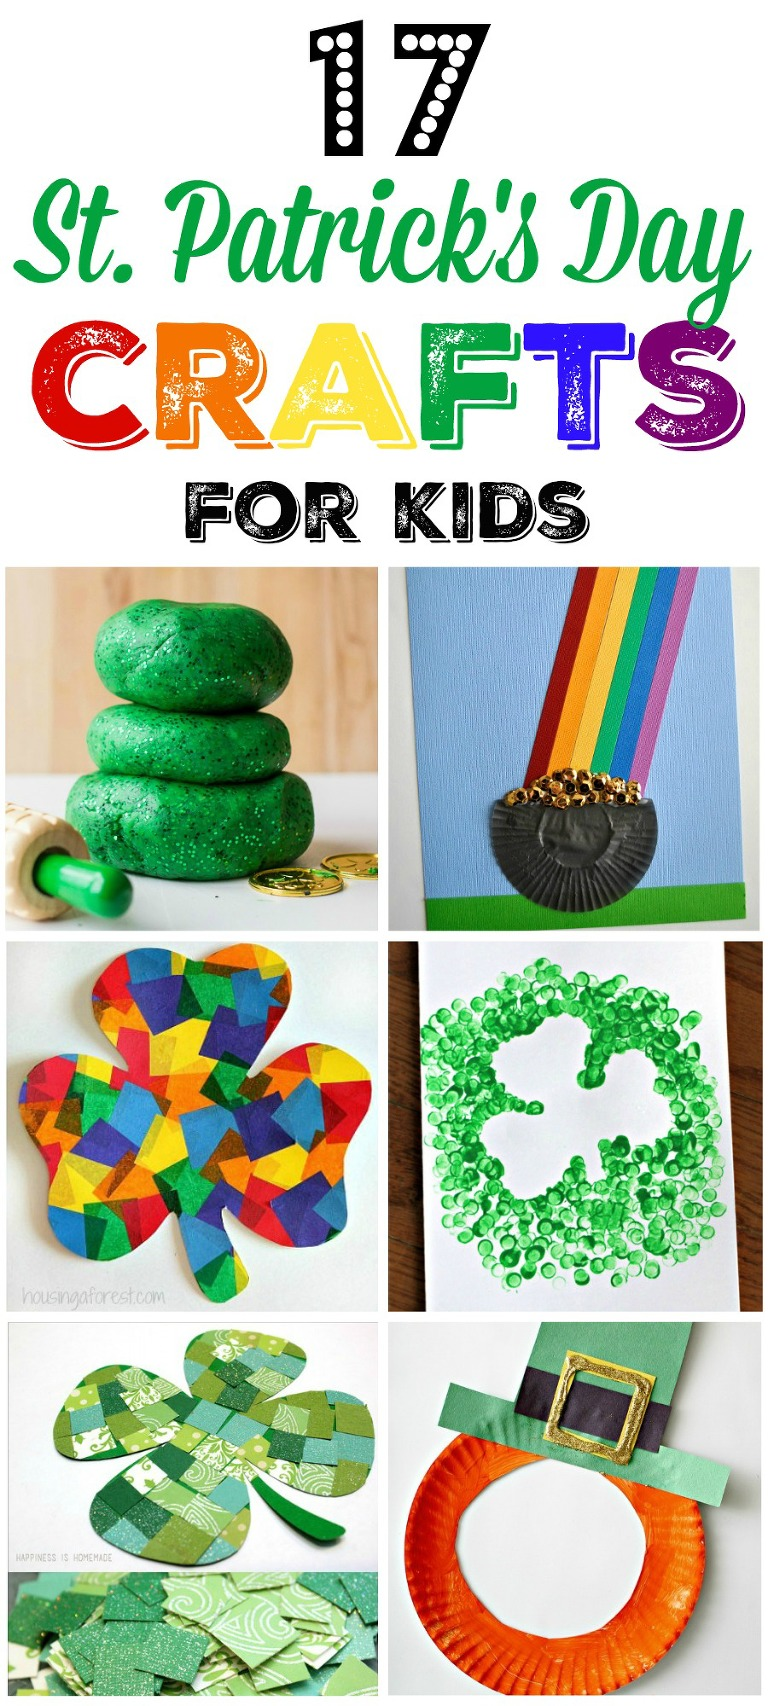 17 fun and easy St. Patrick's day crafts for kids